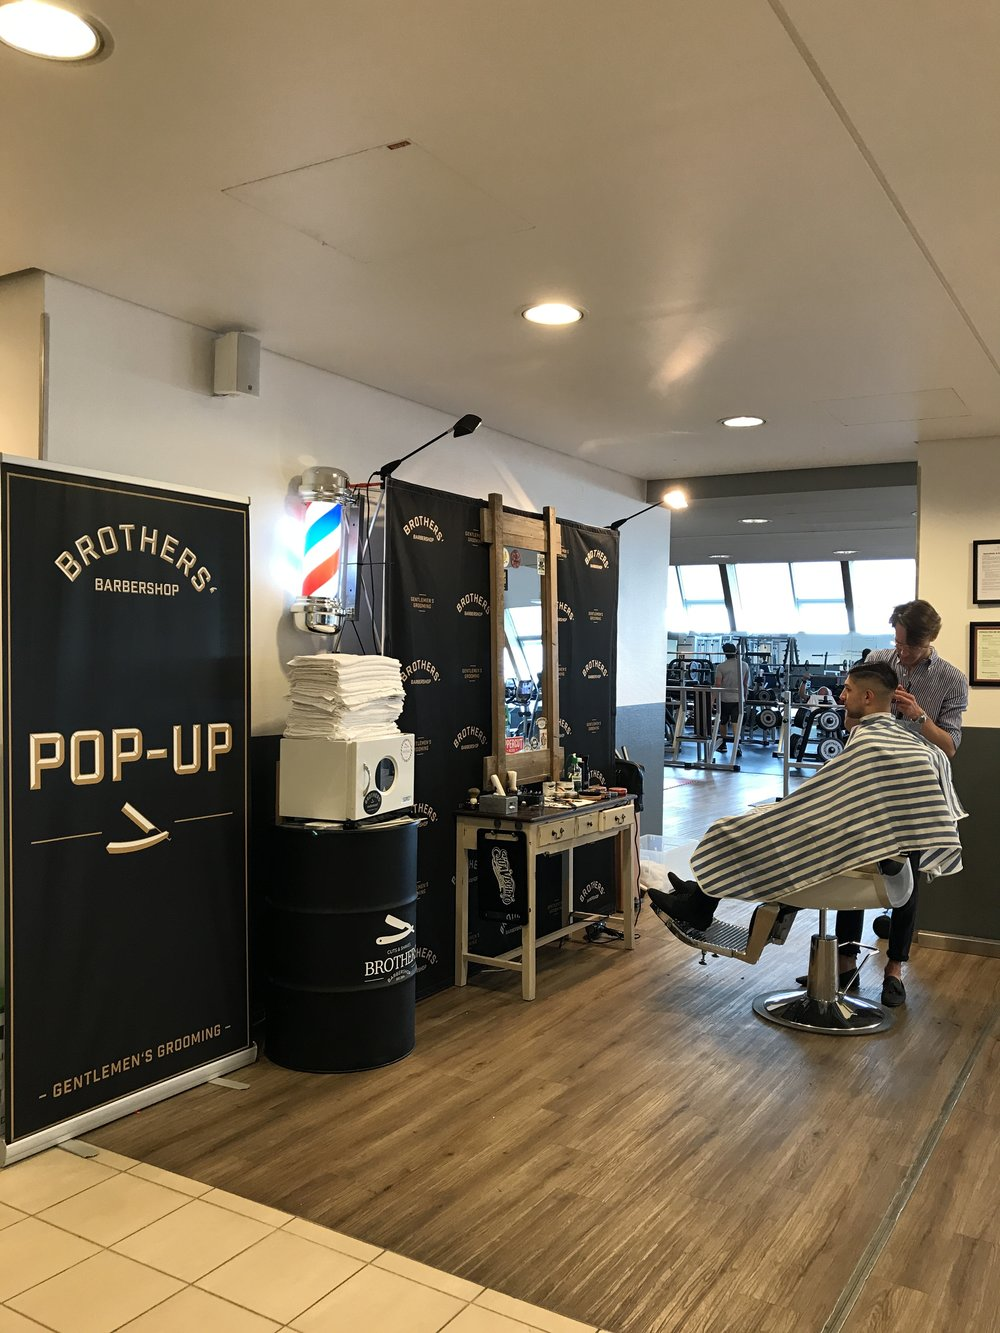 Brothers' pop-up  - Since 2015, we are also offering our pop-up barber installation for fairs, events etc. If you want to impress your male customers - Brothers' Barbershop pop-up is what you need! We will provide outstanding experience, including hot towel shaves with straight razor directly at your location!In conjunction with our traditional craftsmanship, your brand or product will remain a lasting memory of your  customers.Use the form below to get a quotation tailored to your needs